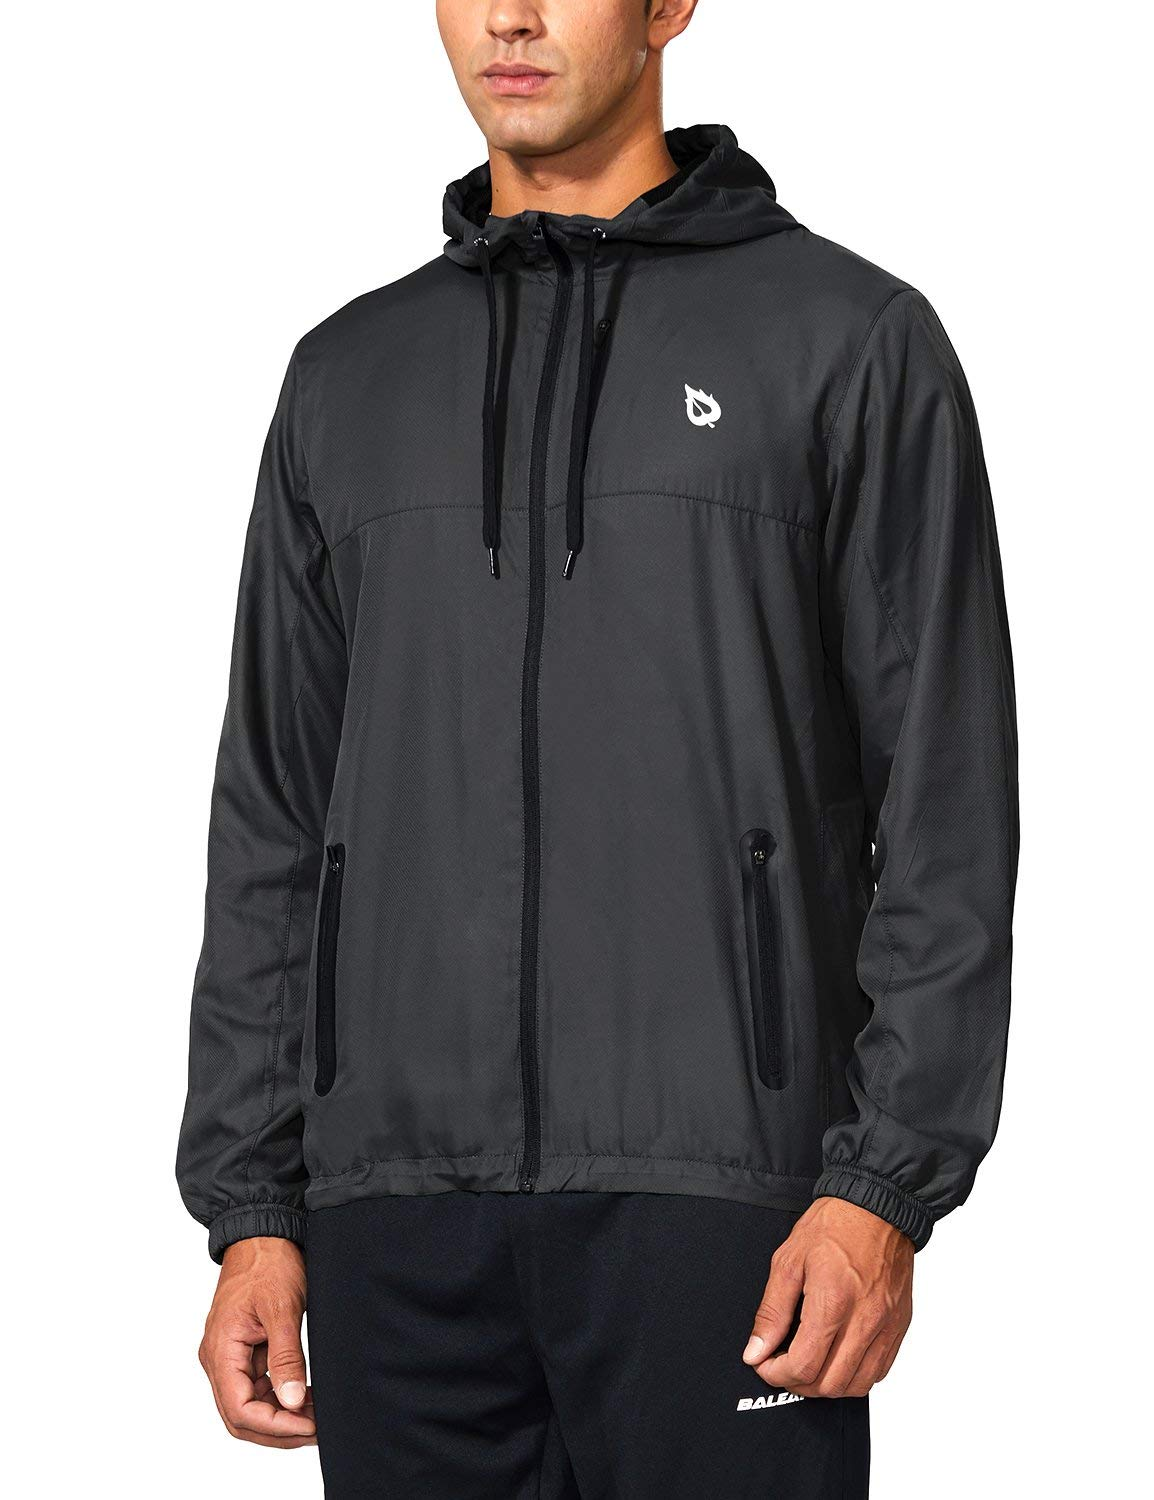 BALEAF Men's Running Woven Jackets Lightweight Track Windbreaker Zip Pockets Black Size M by BALEAF